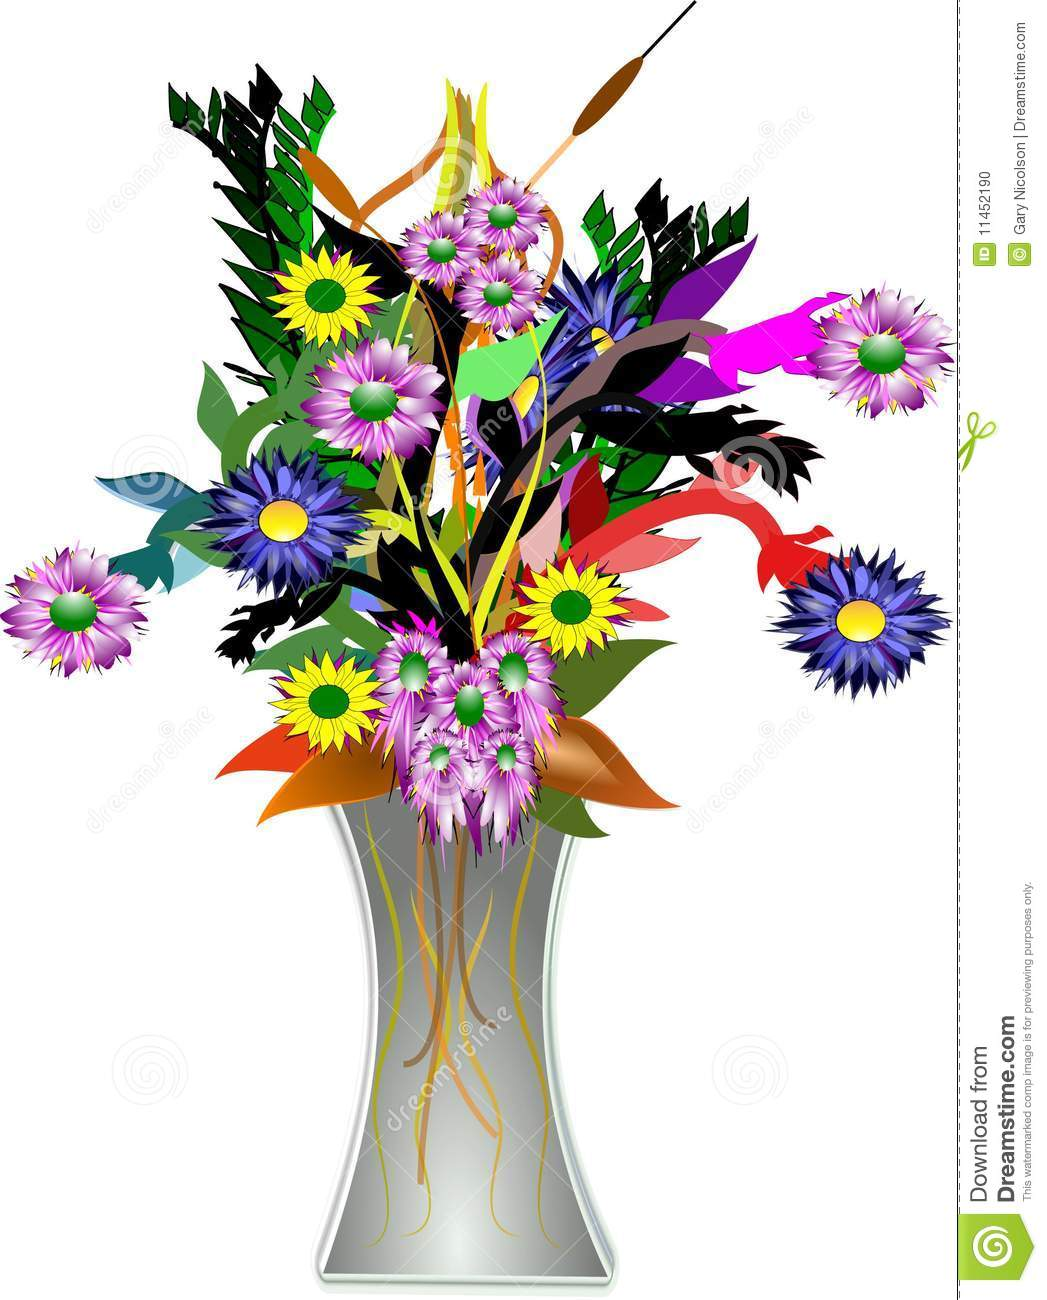 flower vases with flowers clipart vase of flowers clipart - Flower Vase